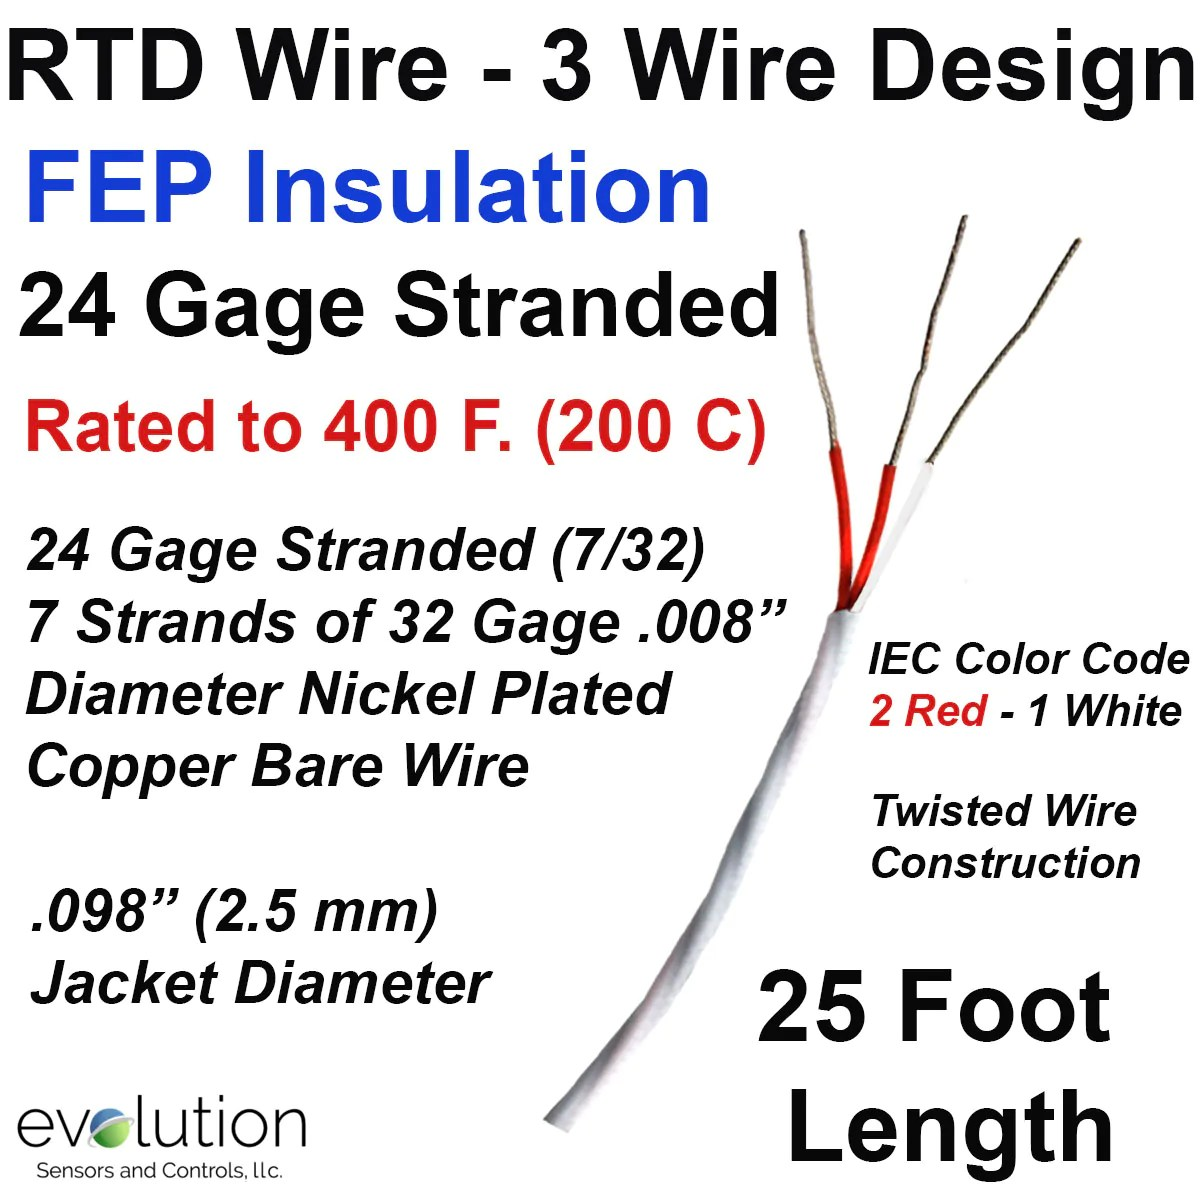 medium resolution of rtd wire 3 wire design 24 gage stranded with fep insulation 25 rtd wiring color code